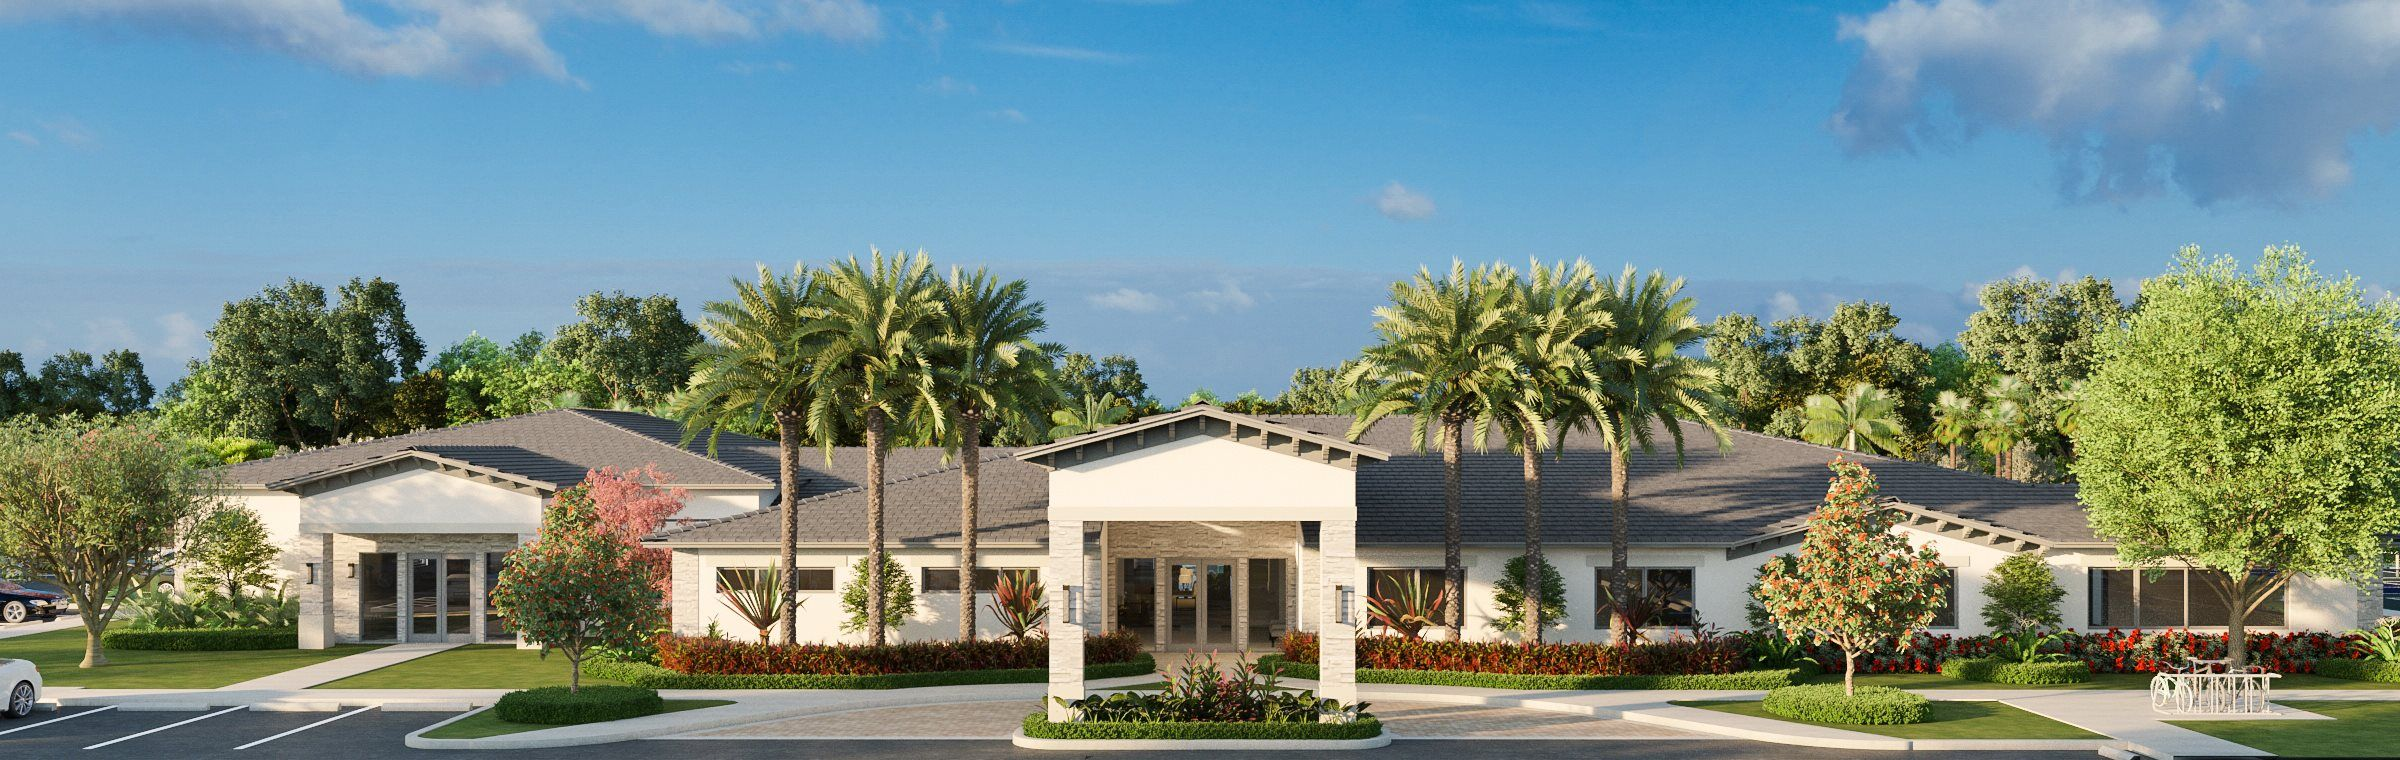 'Avalon Trails' by Lennar - Palm Atlantic in Palm Beach County